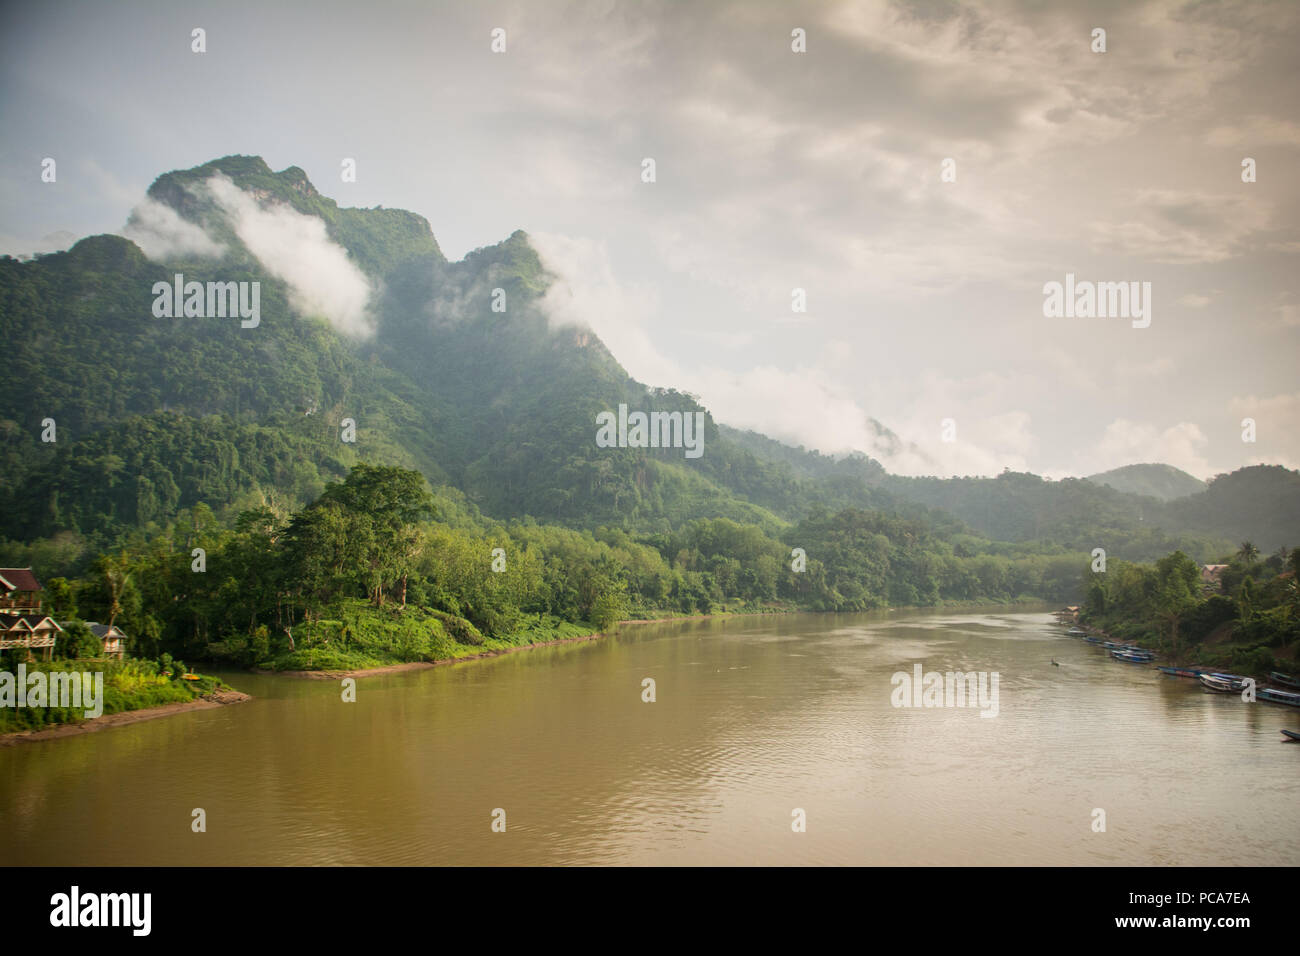 Misty mountains in Nong Khiaw, Laos PDR after the rain. - Stock Image